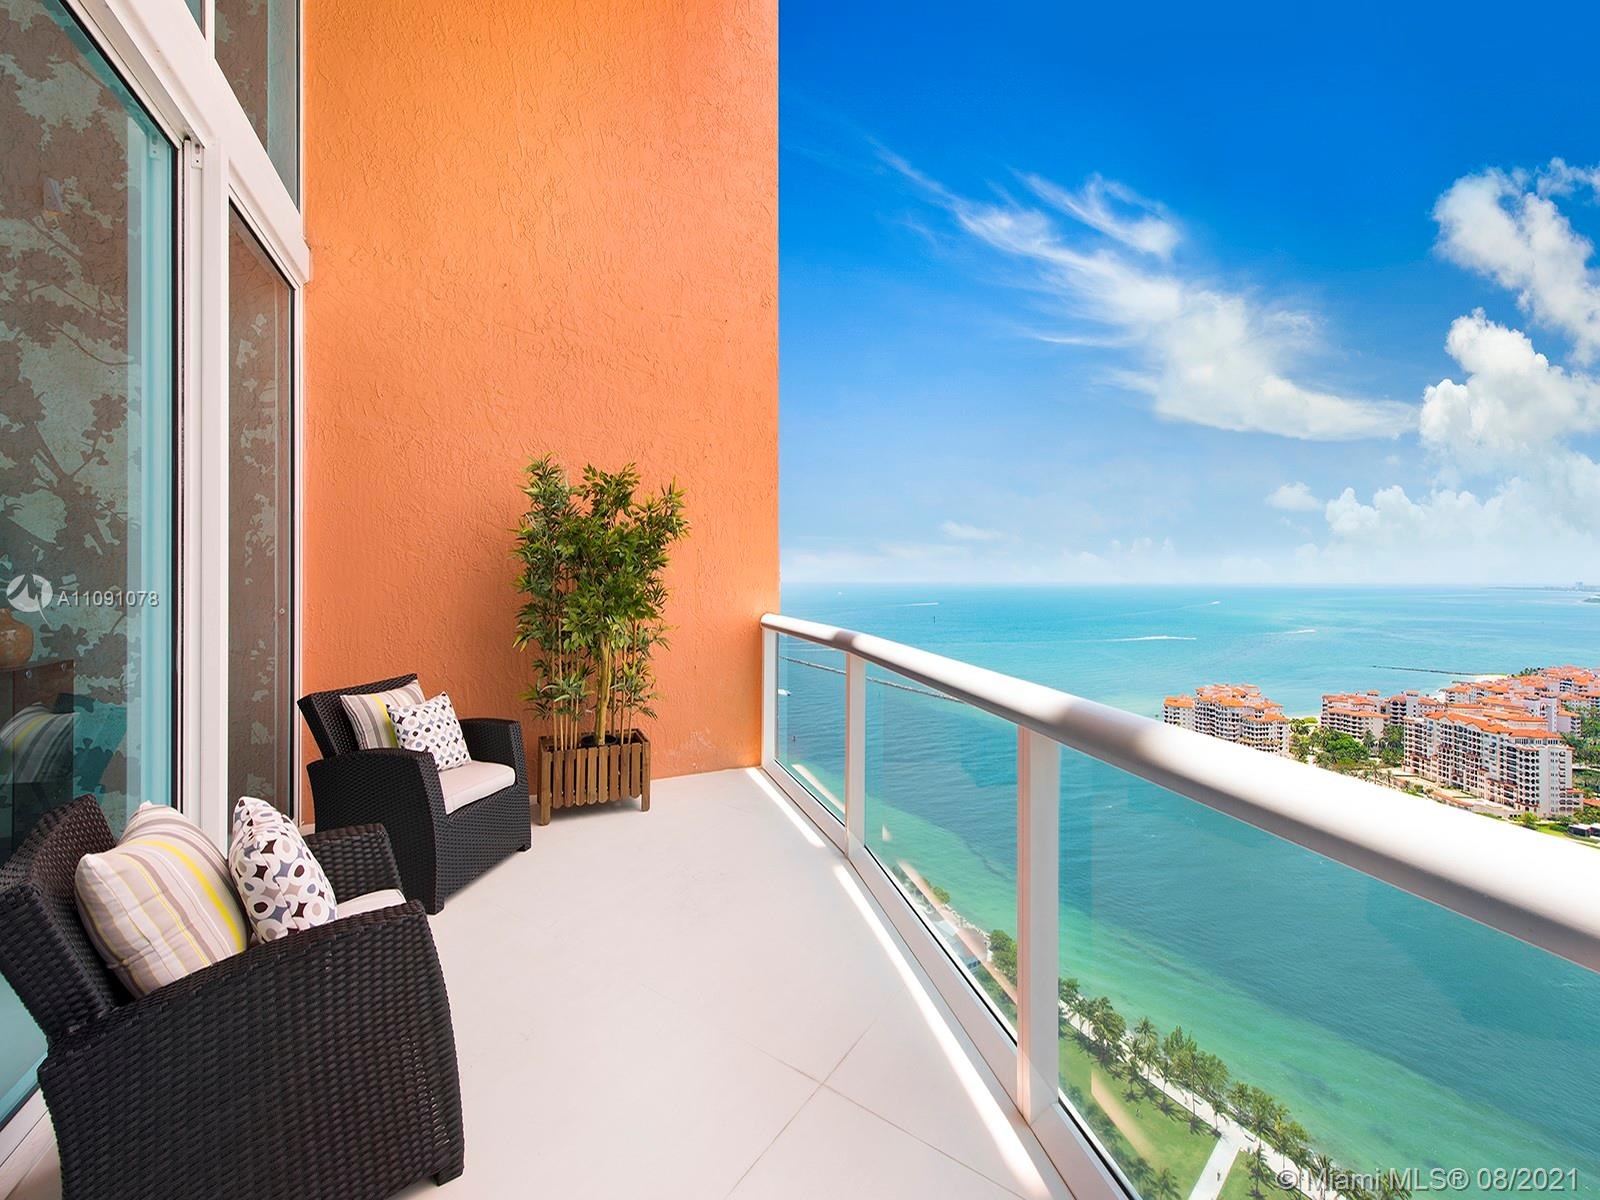 300 S Pointe Dr, Unit #4004 Luxury Real Estate